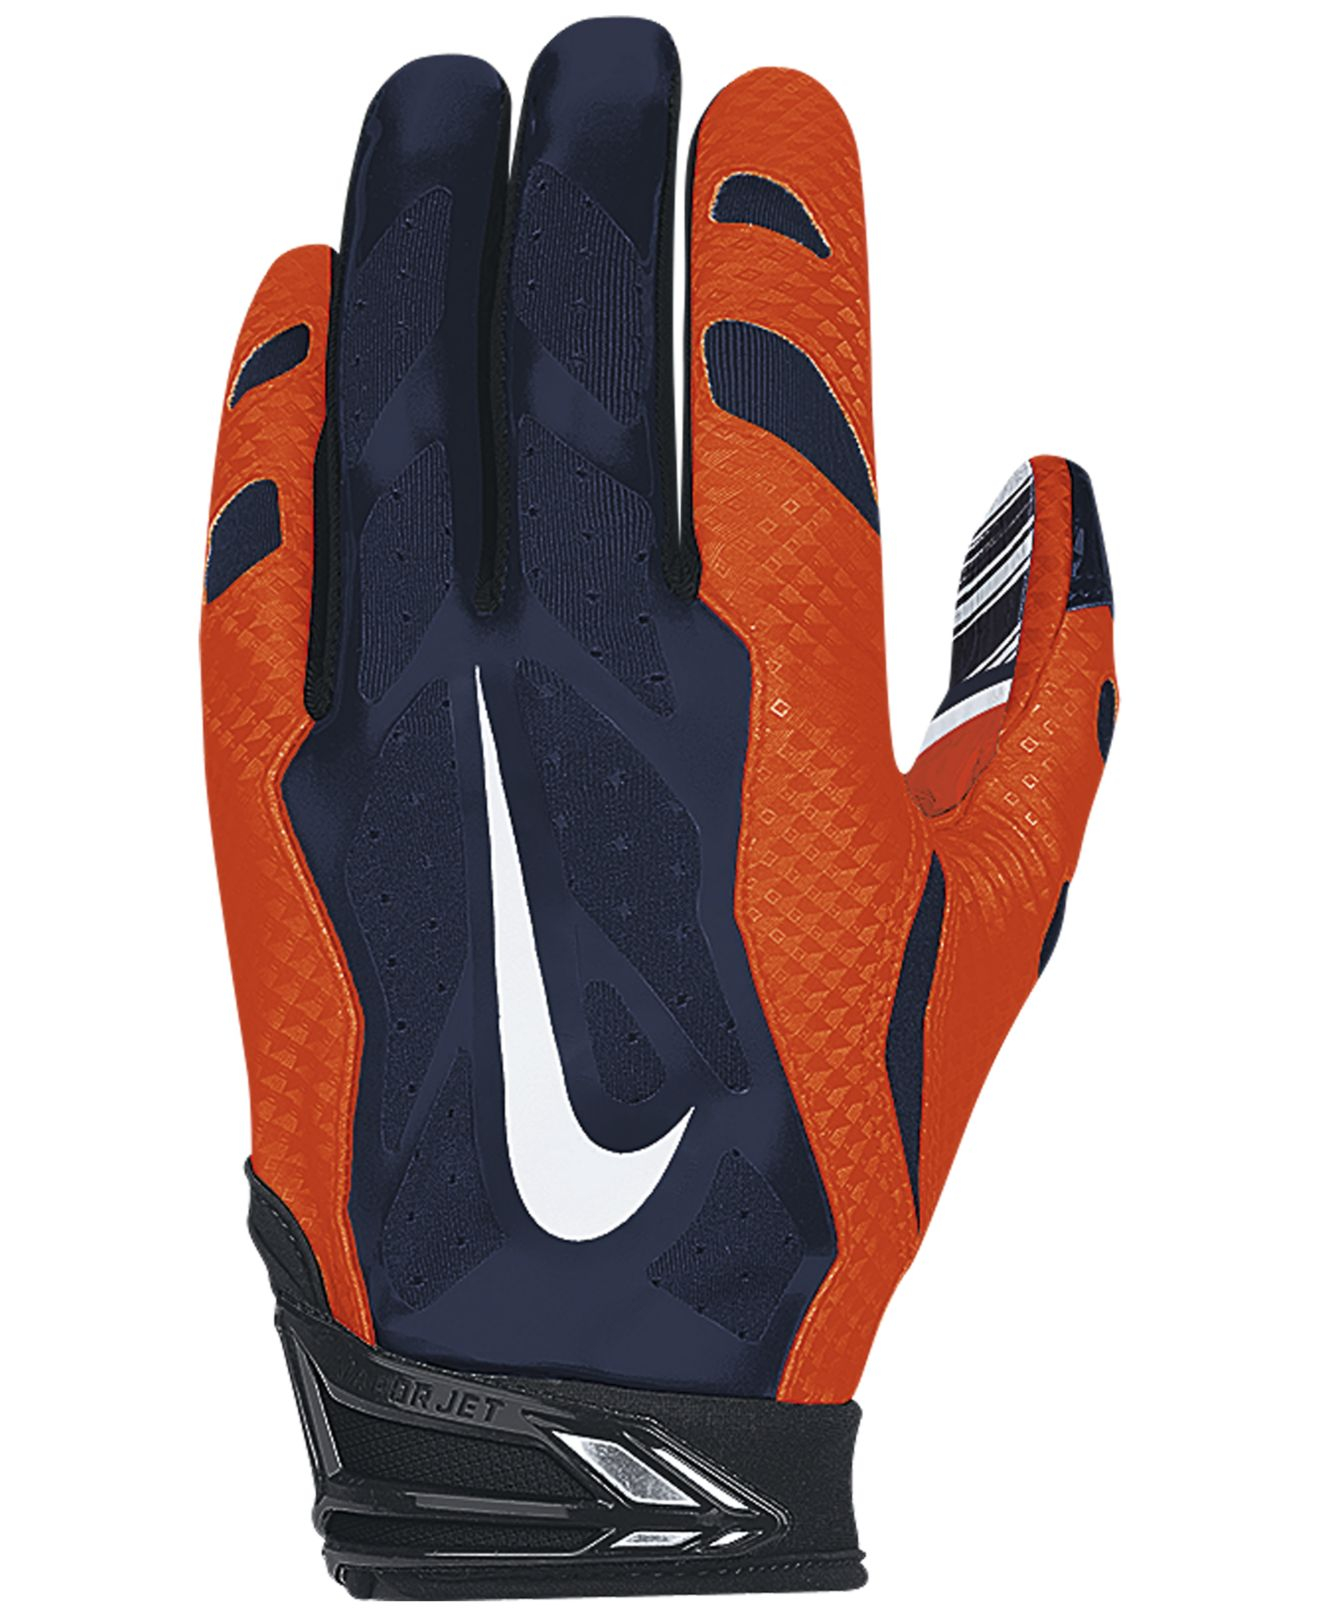 Houston Texans Camouflage Utility Work Glove - Red